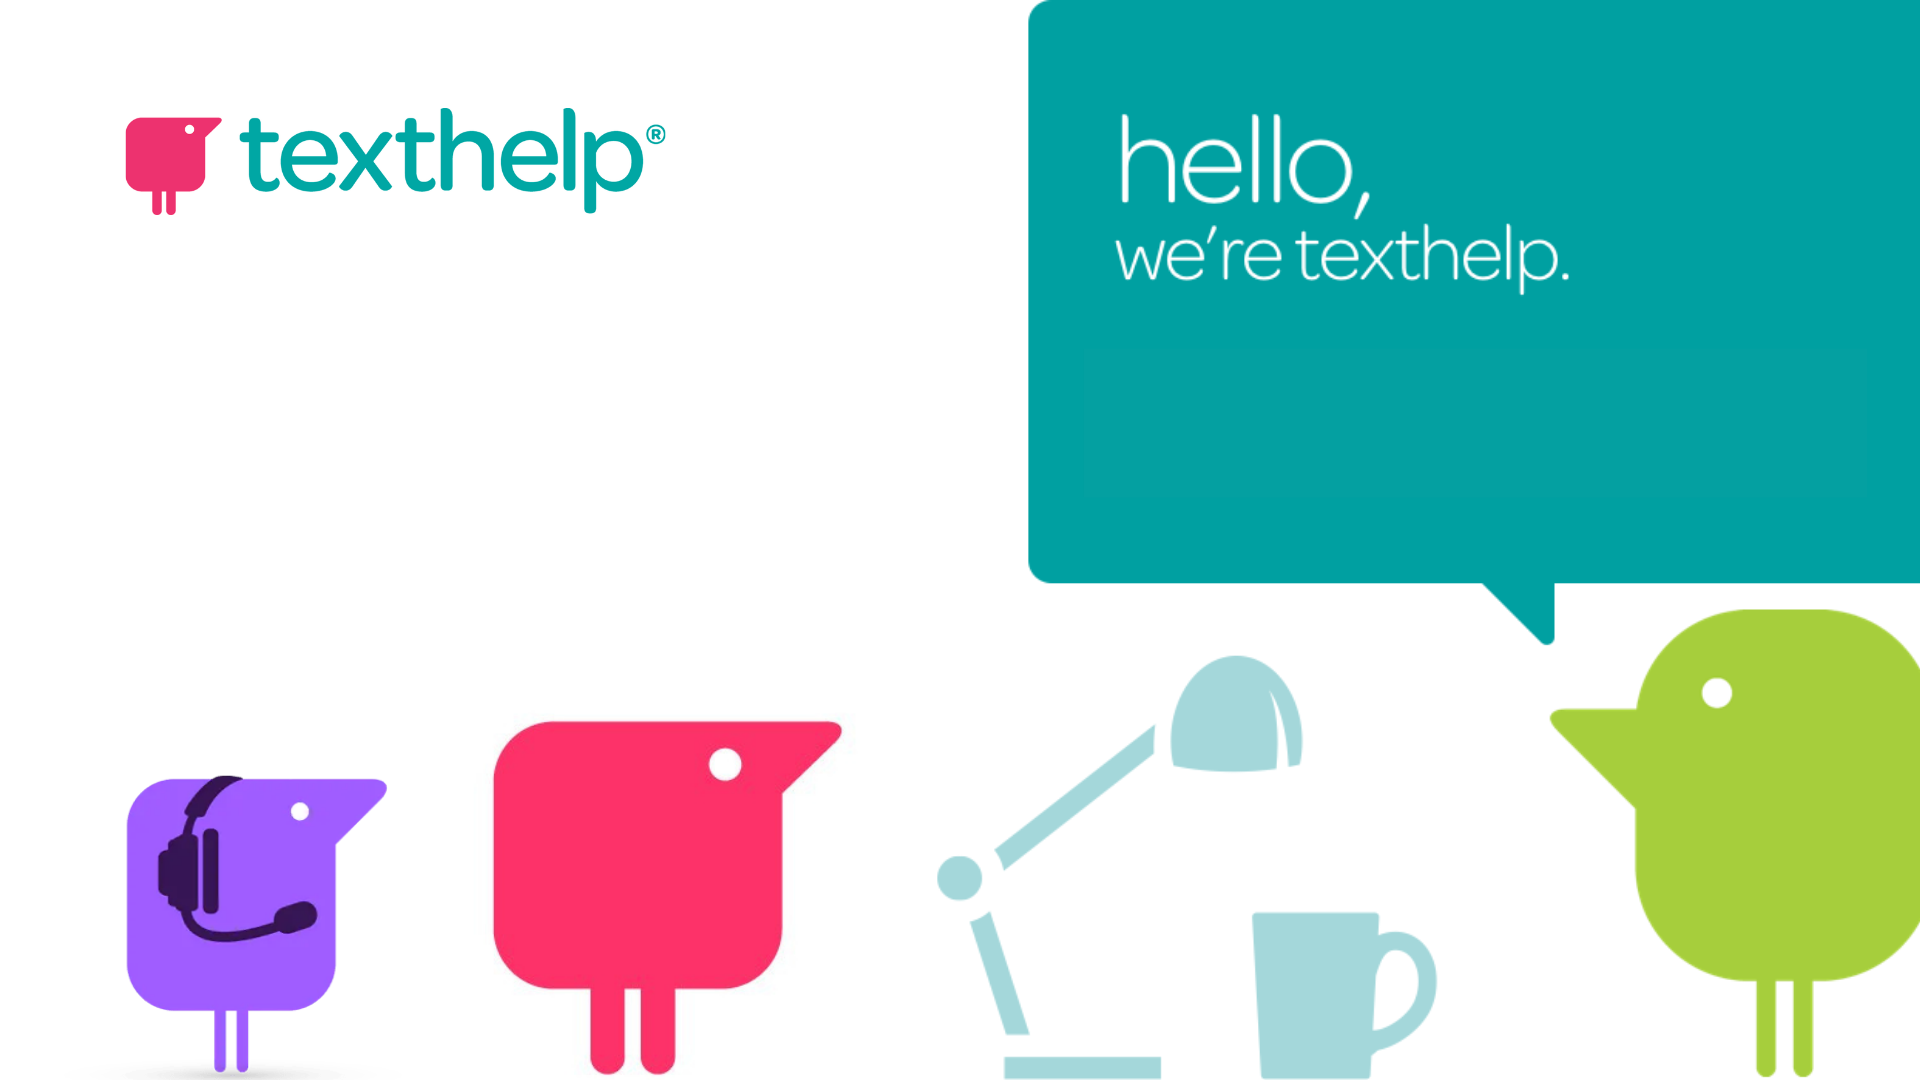 """Image shows Texthelp logo and figures with text """"hello, we're texthelp"""""""